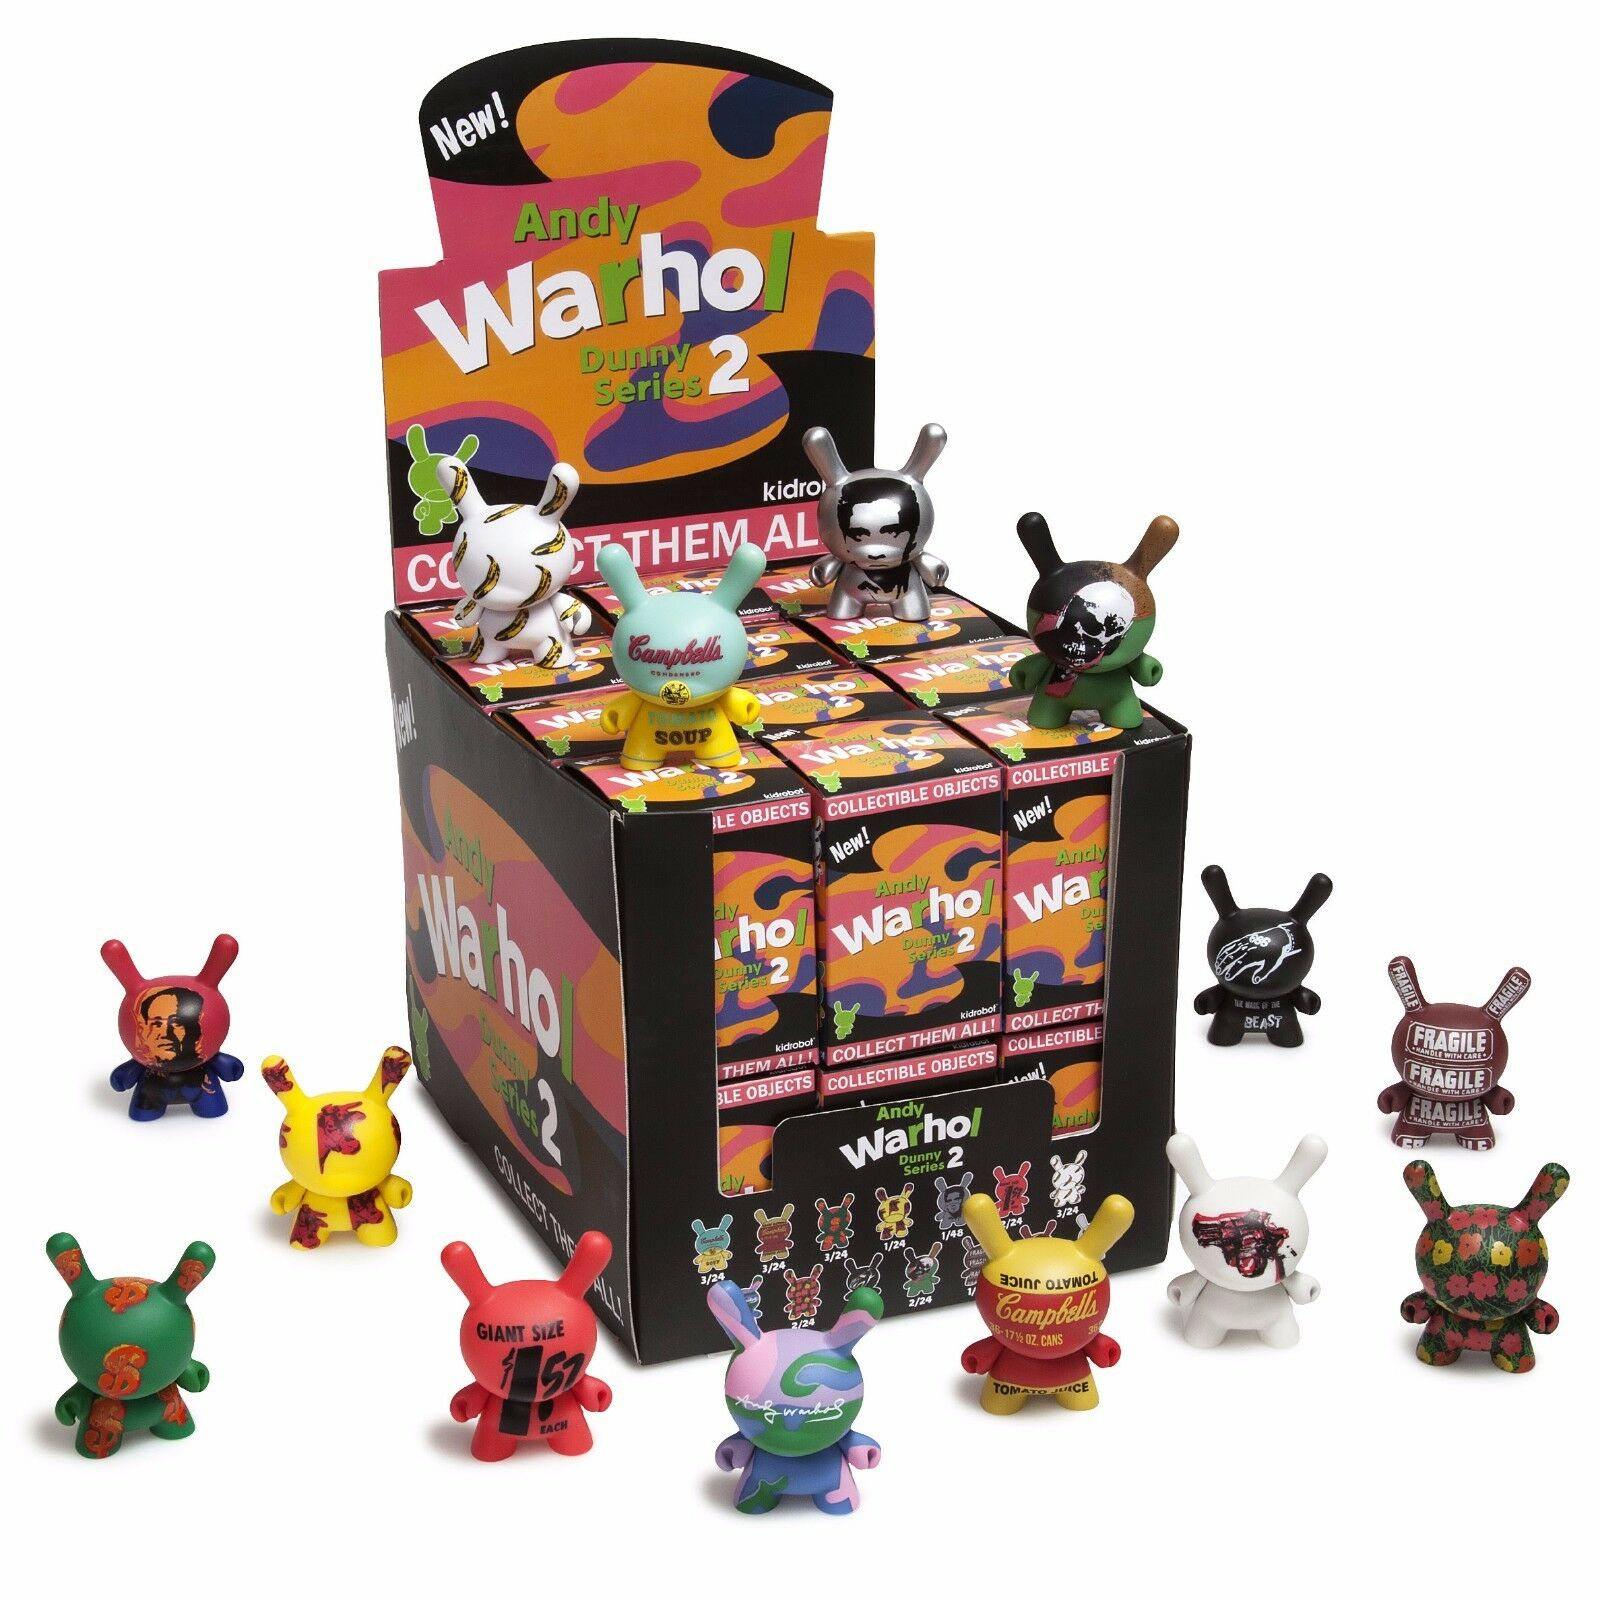 Kidrobot DUNNY 2017 ANDY WARHOL SERIES 2 SEALED CASE